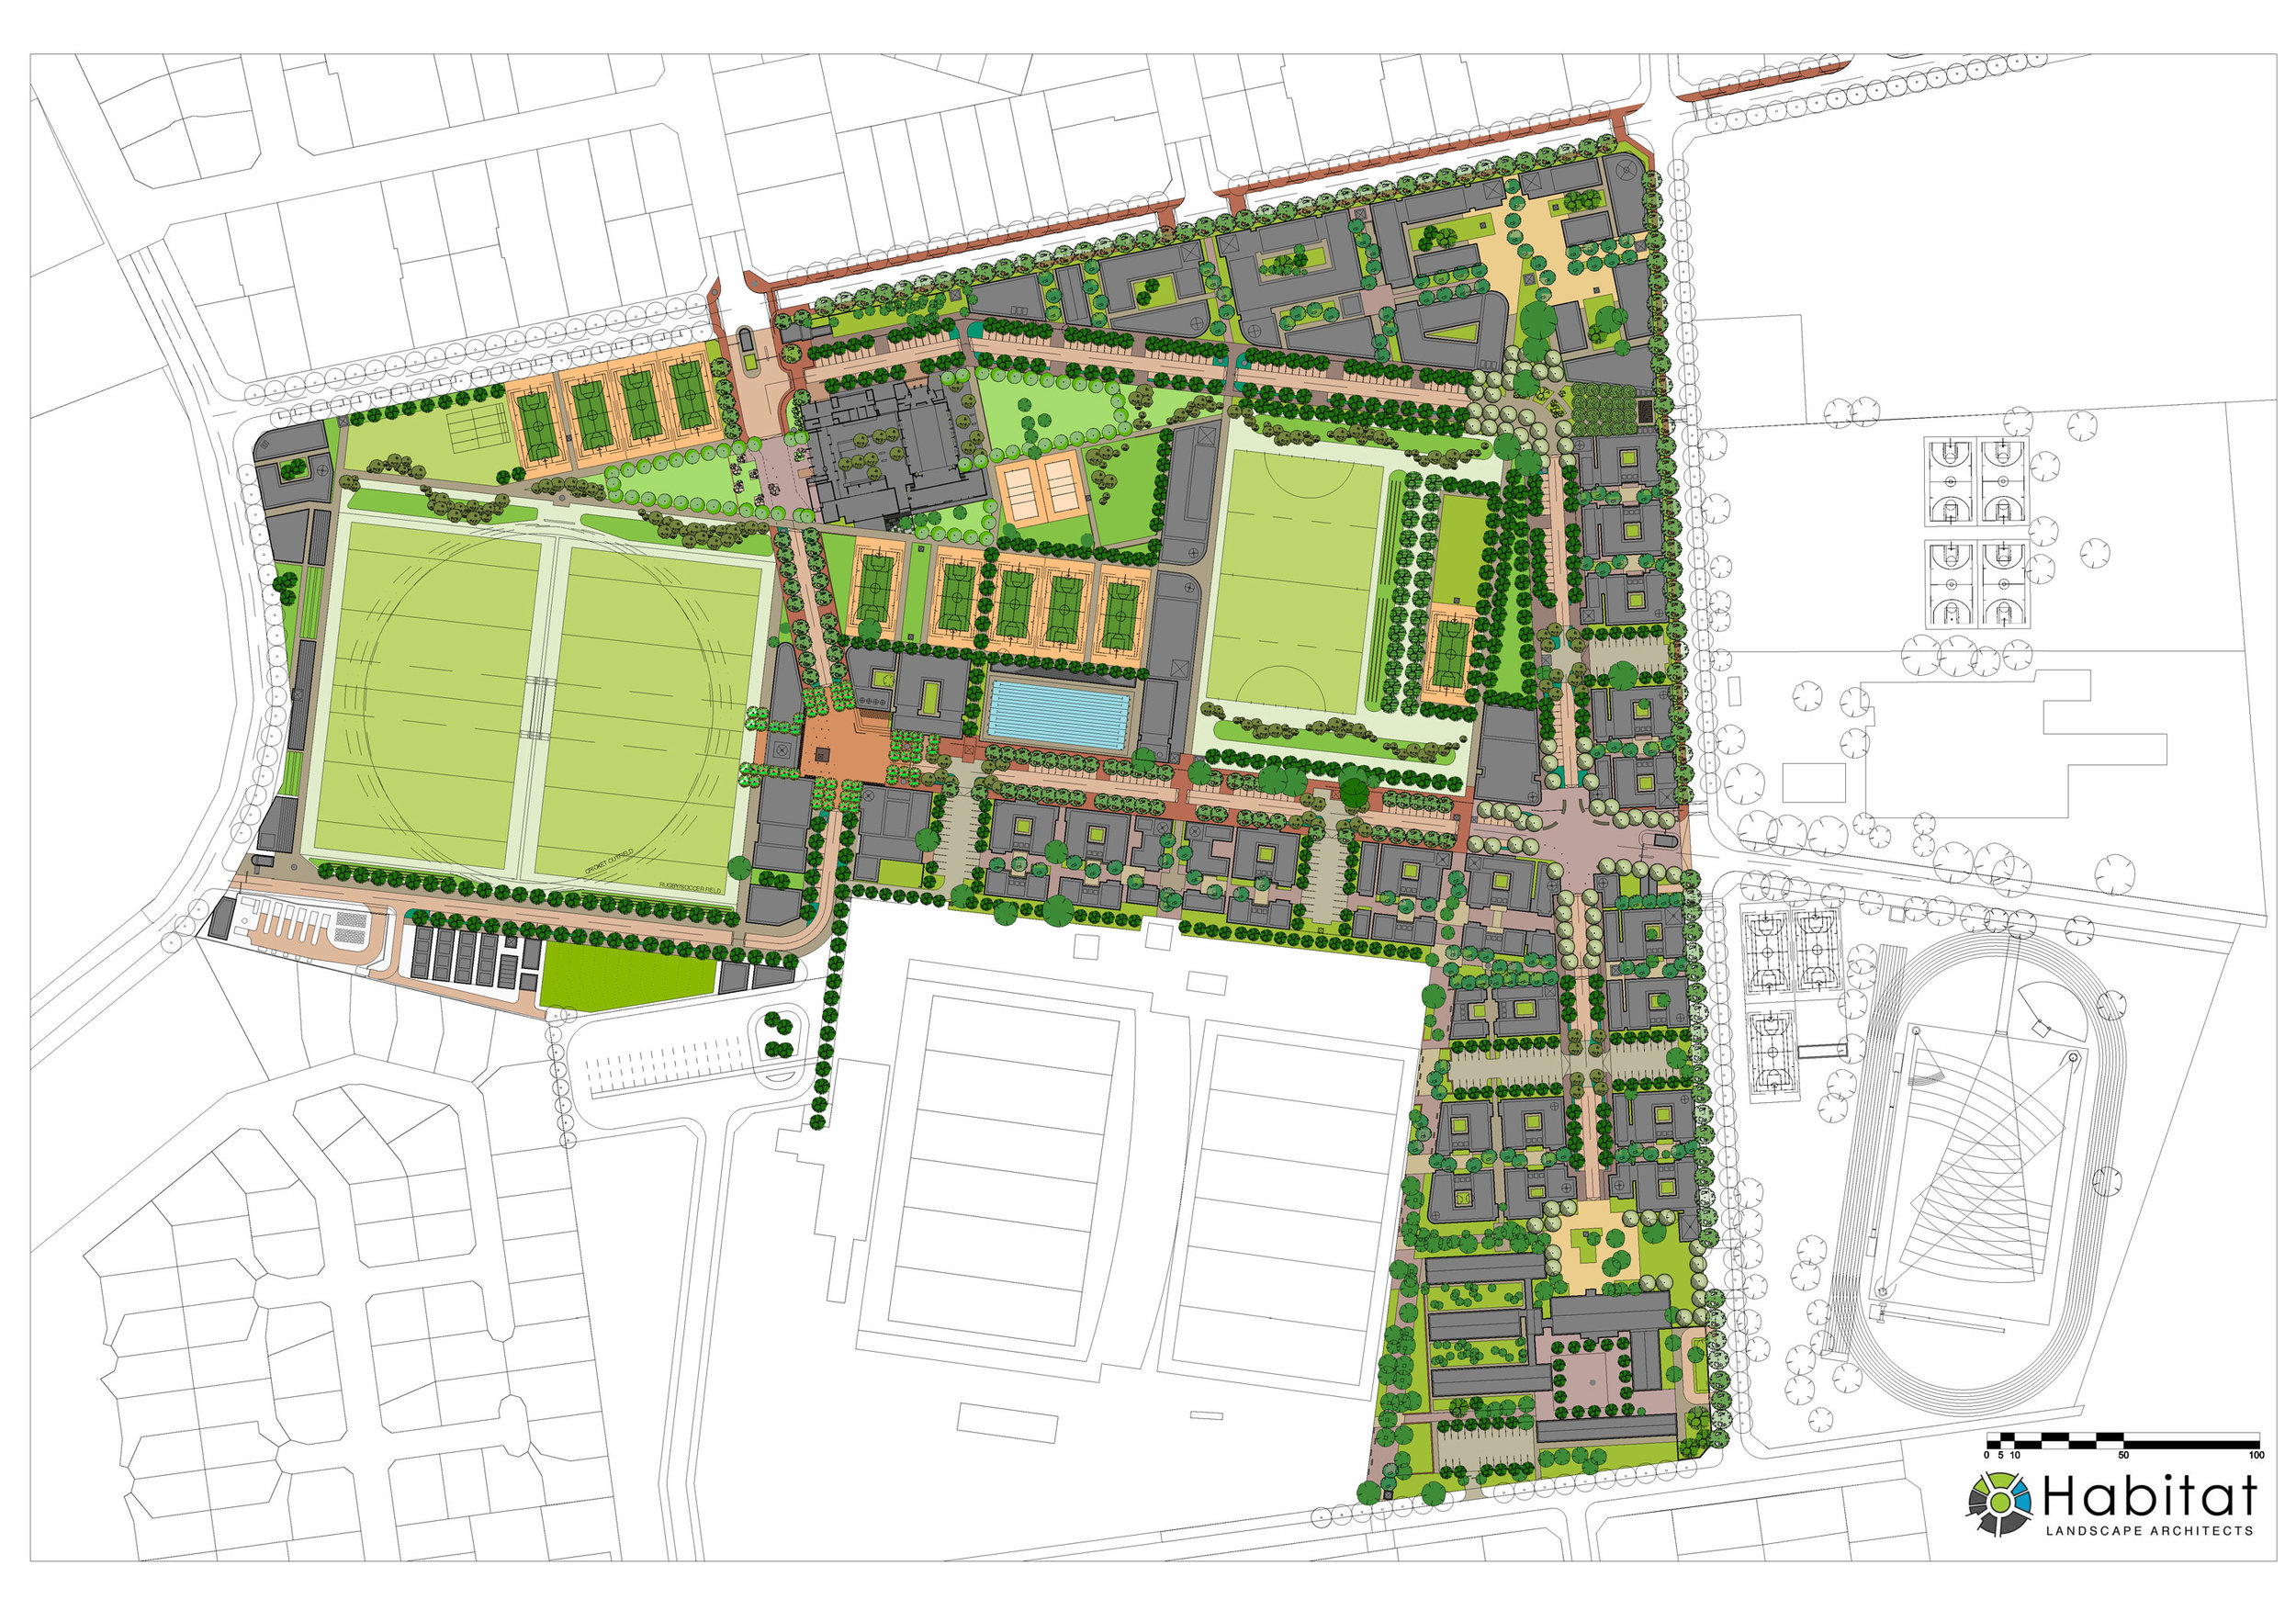 South Campus Landscape Masterplan - expressed on the urban framework by LHA + Ud